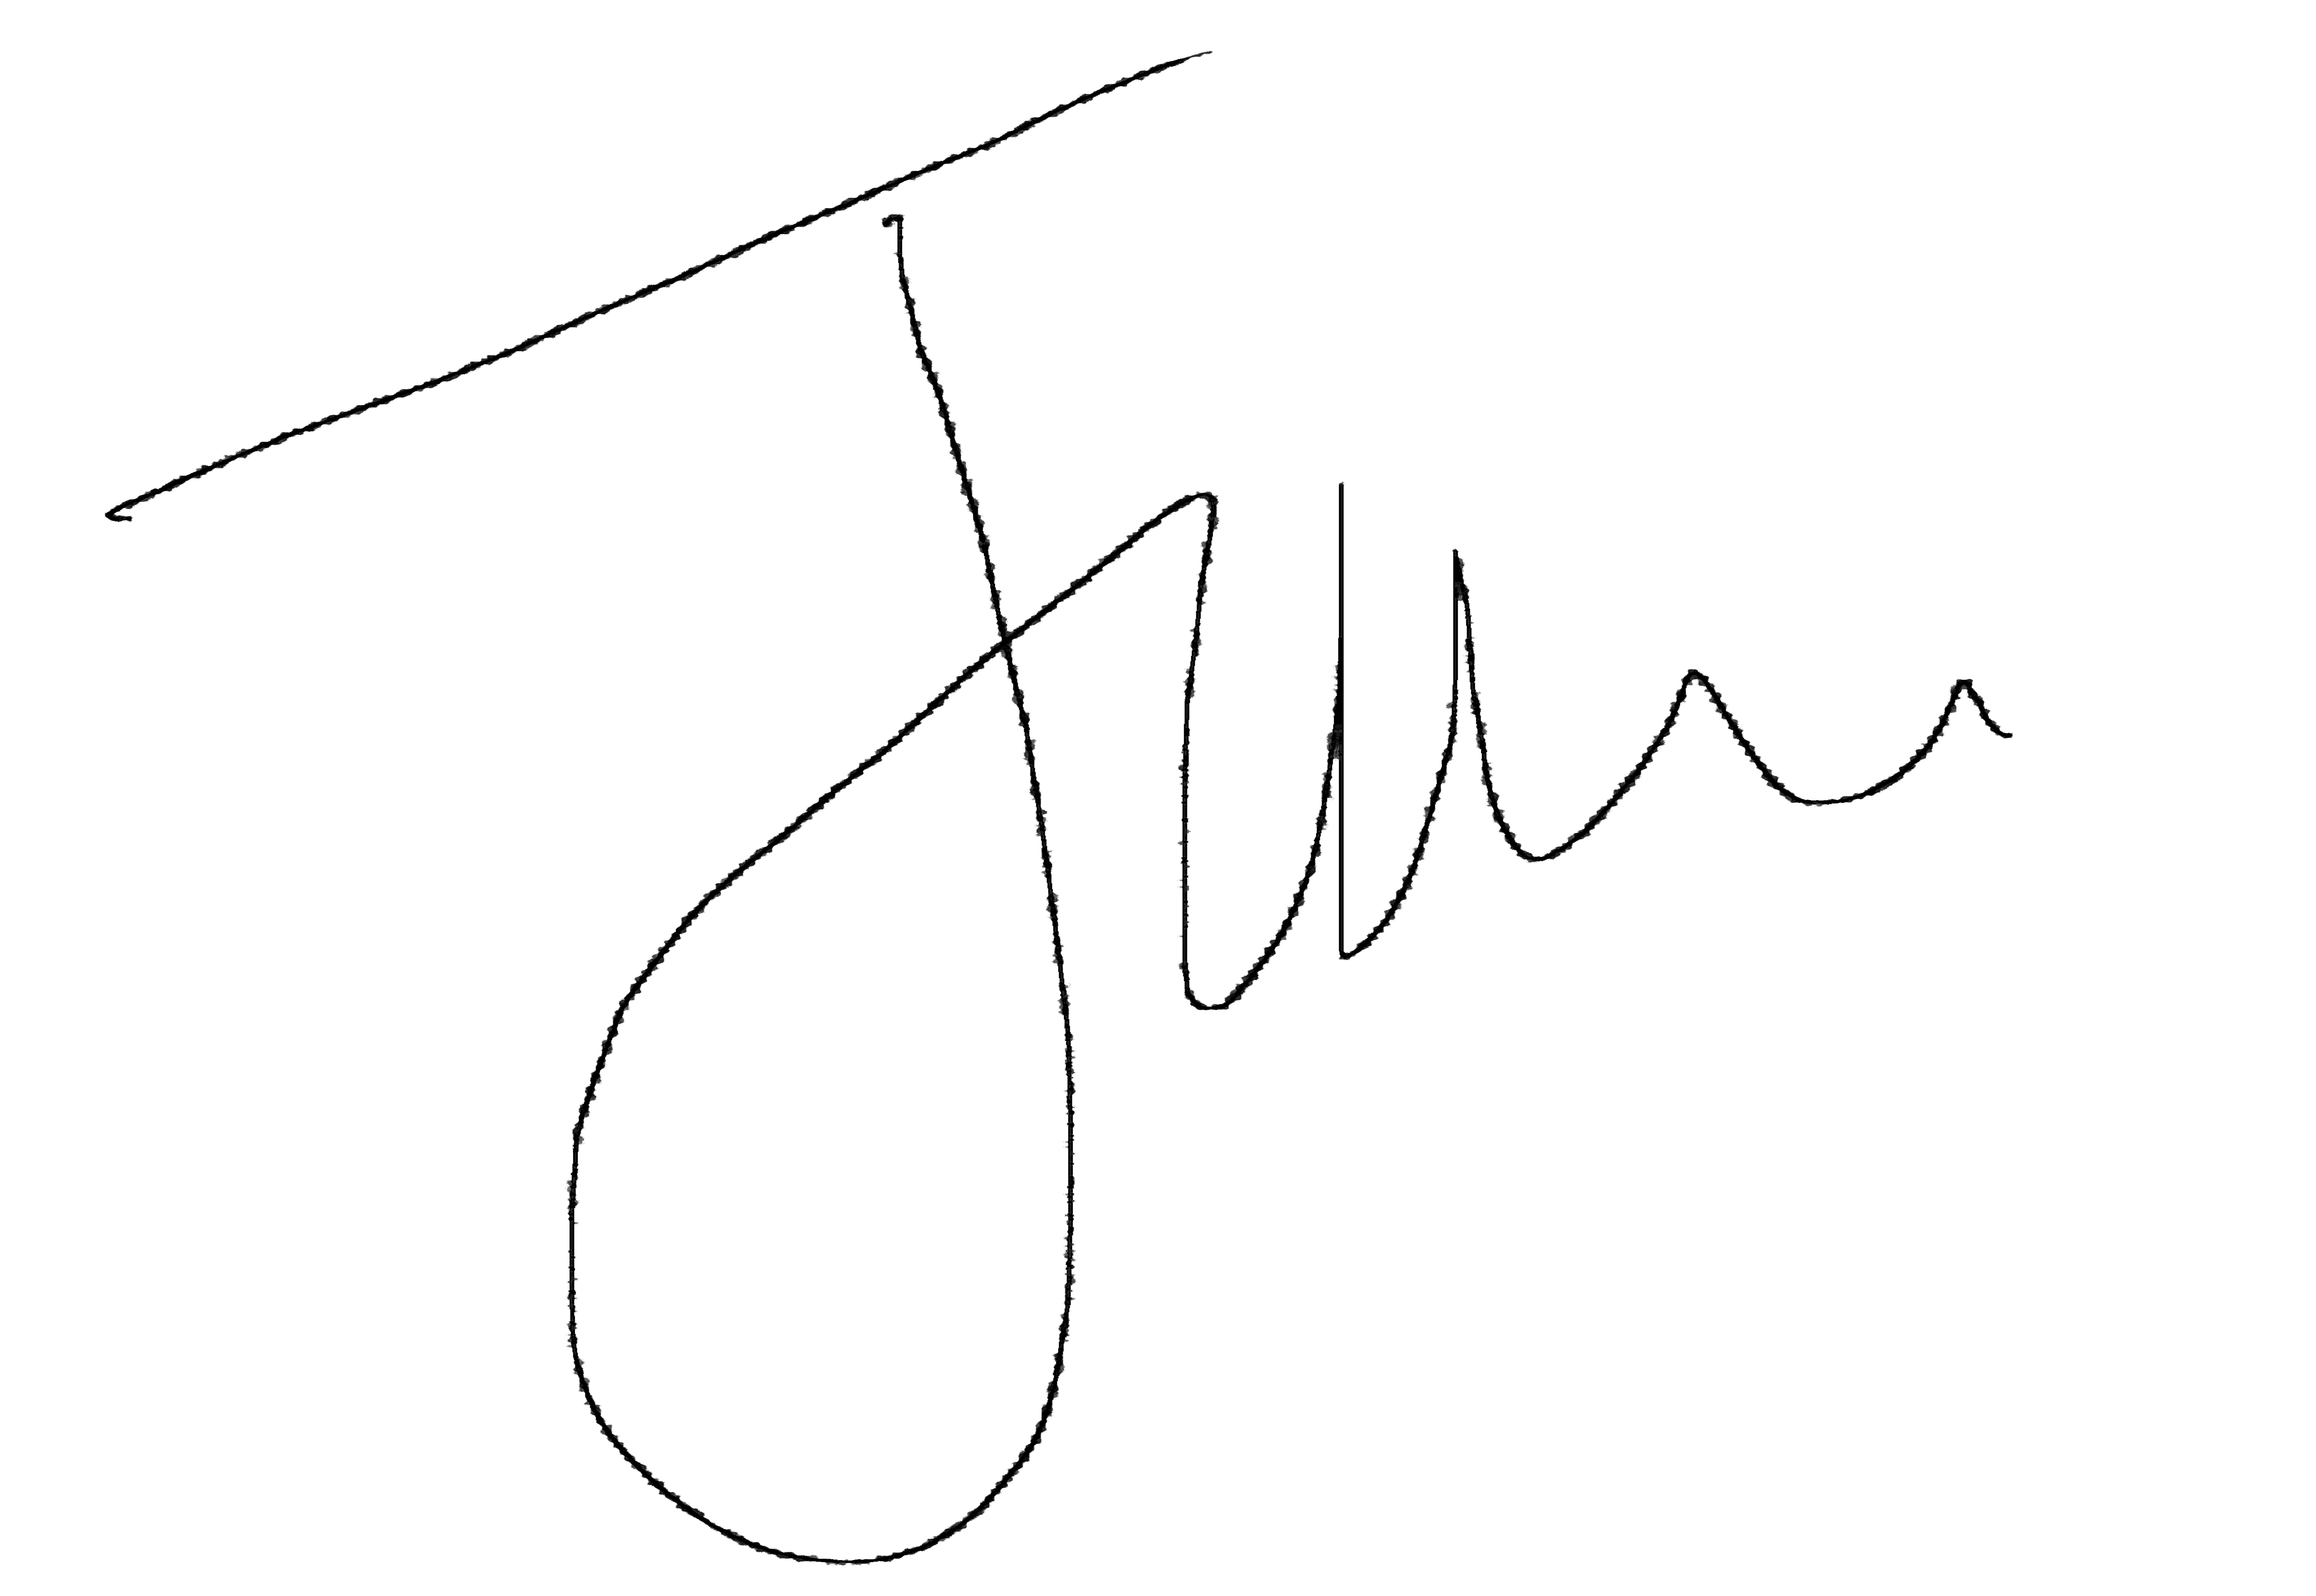 jeremy jones Signature